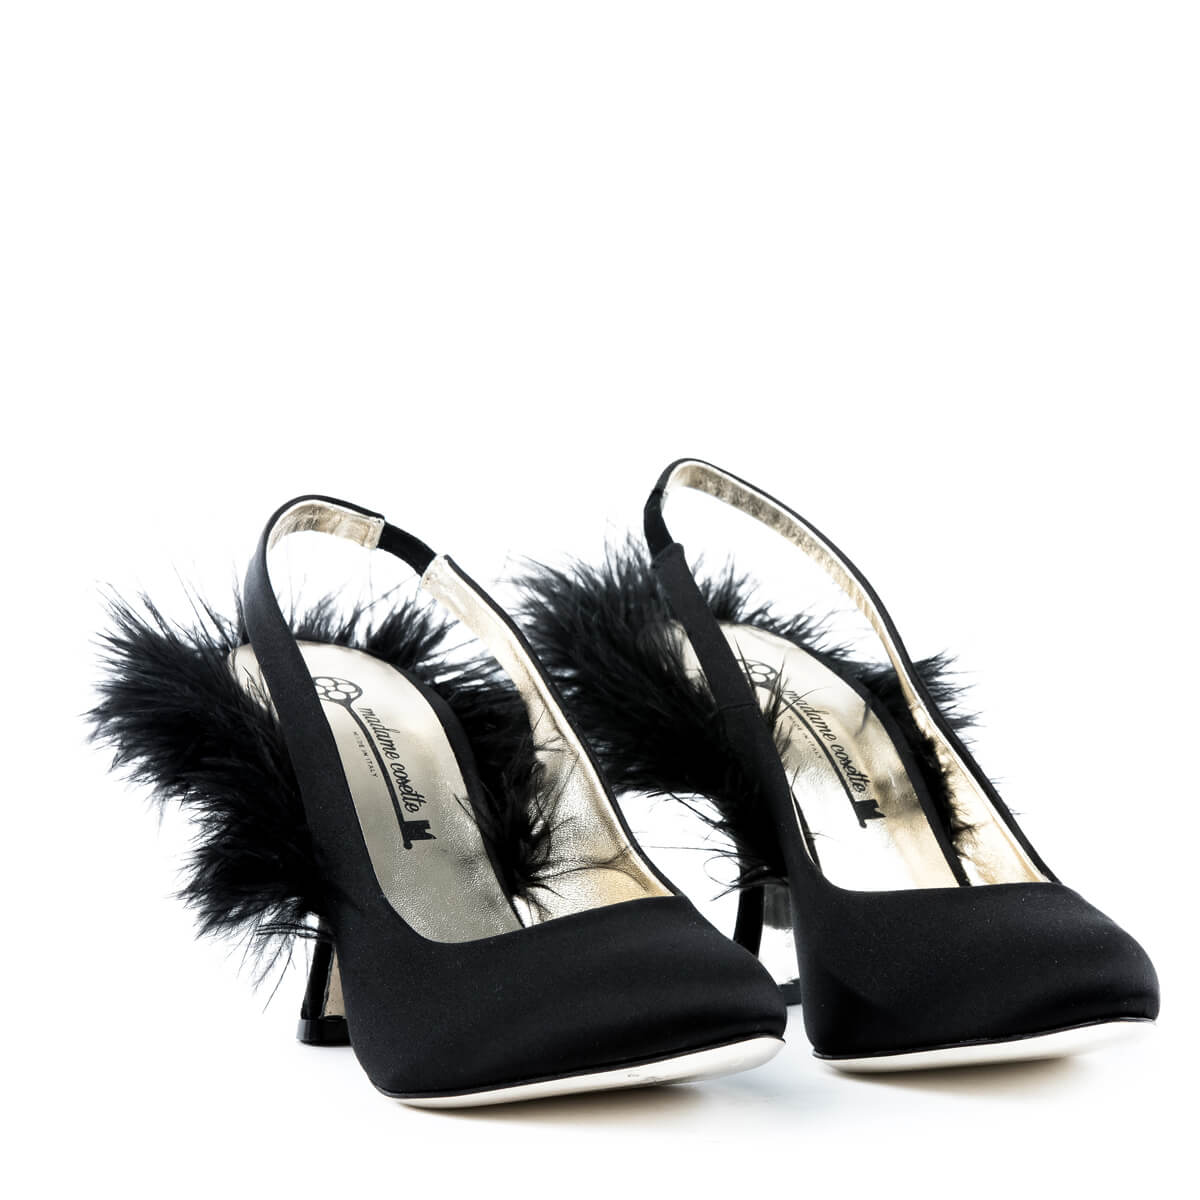 Plumes Slingback Pumps - Black